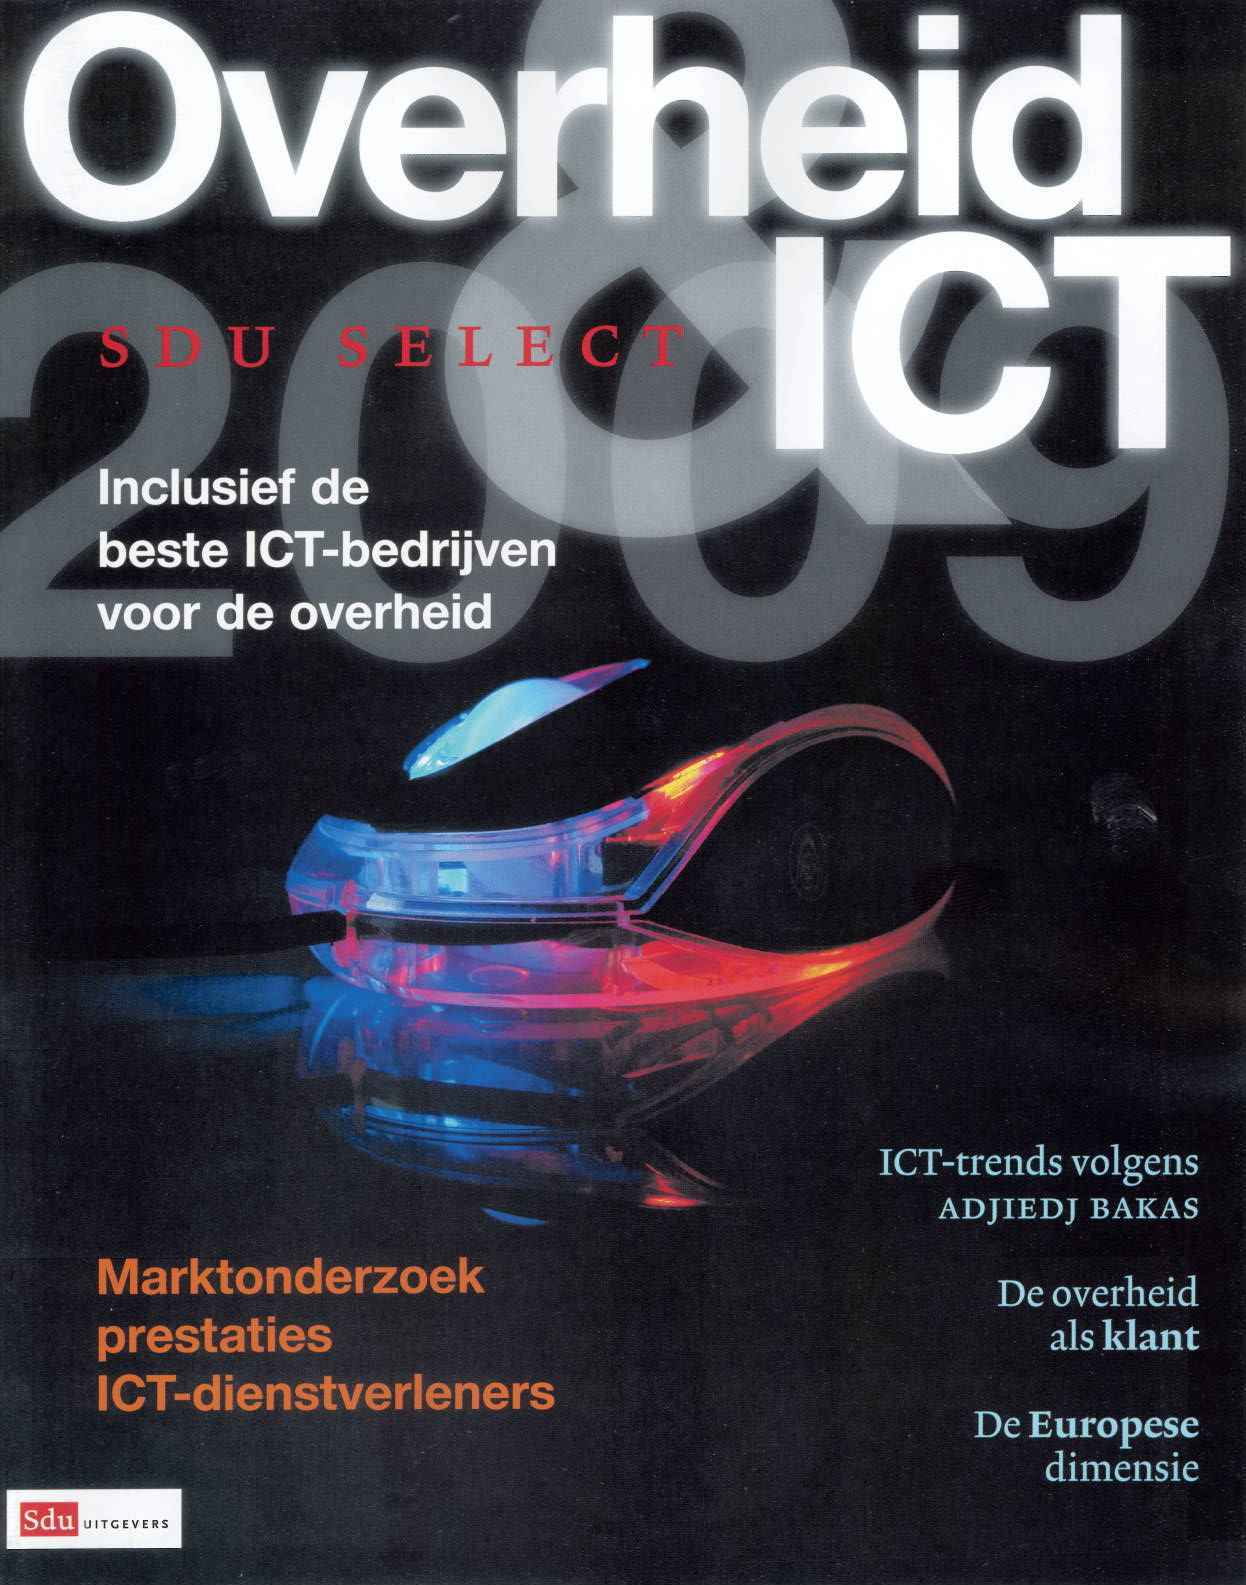 SDU Select Overheid en ICT - 2009